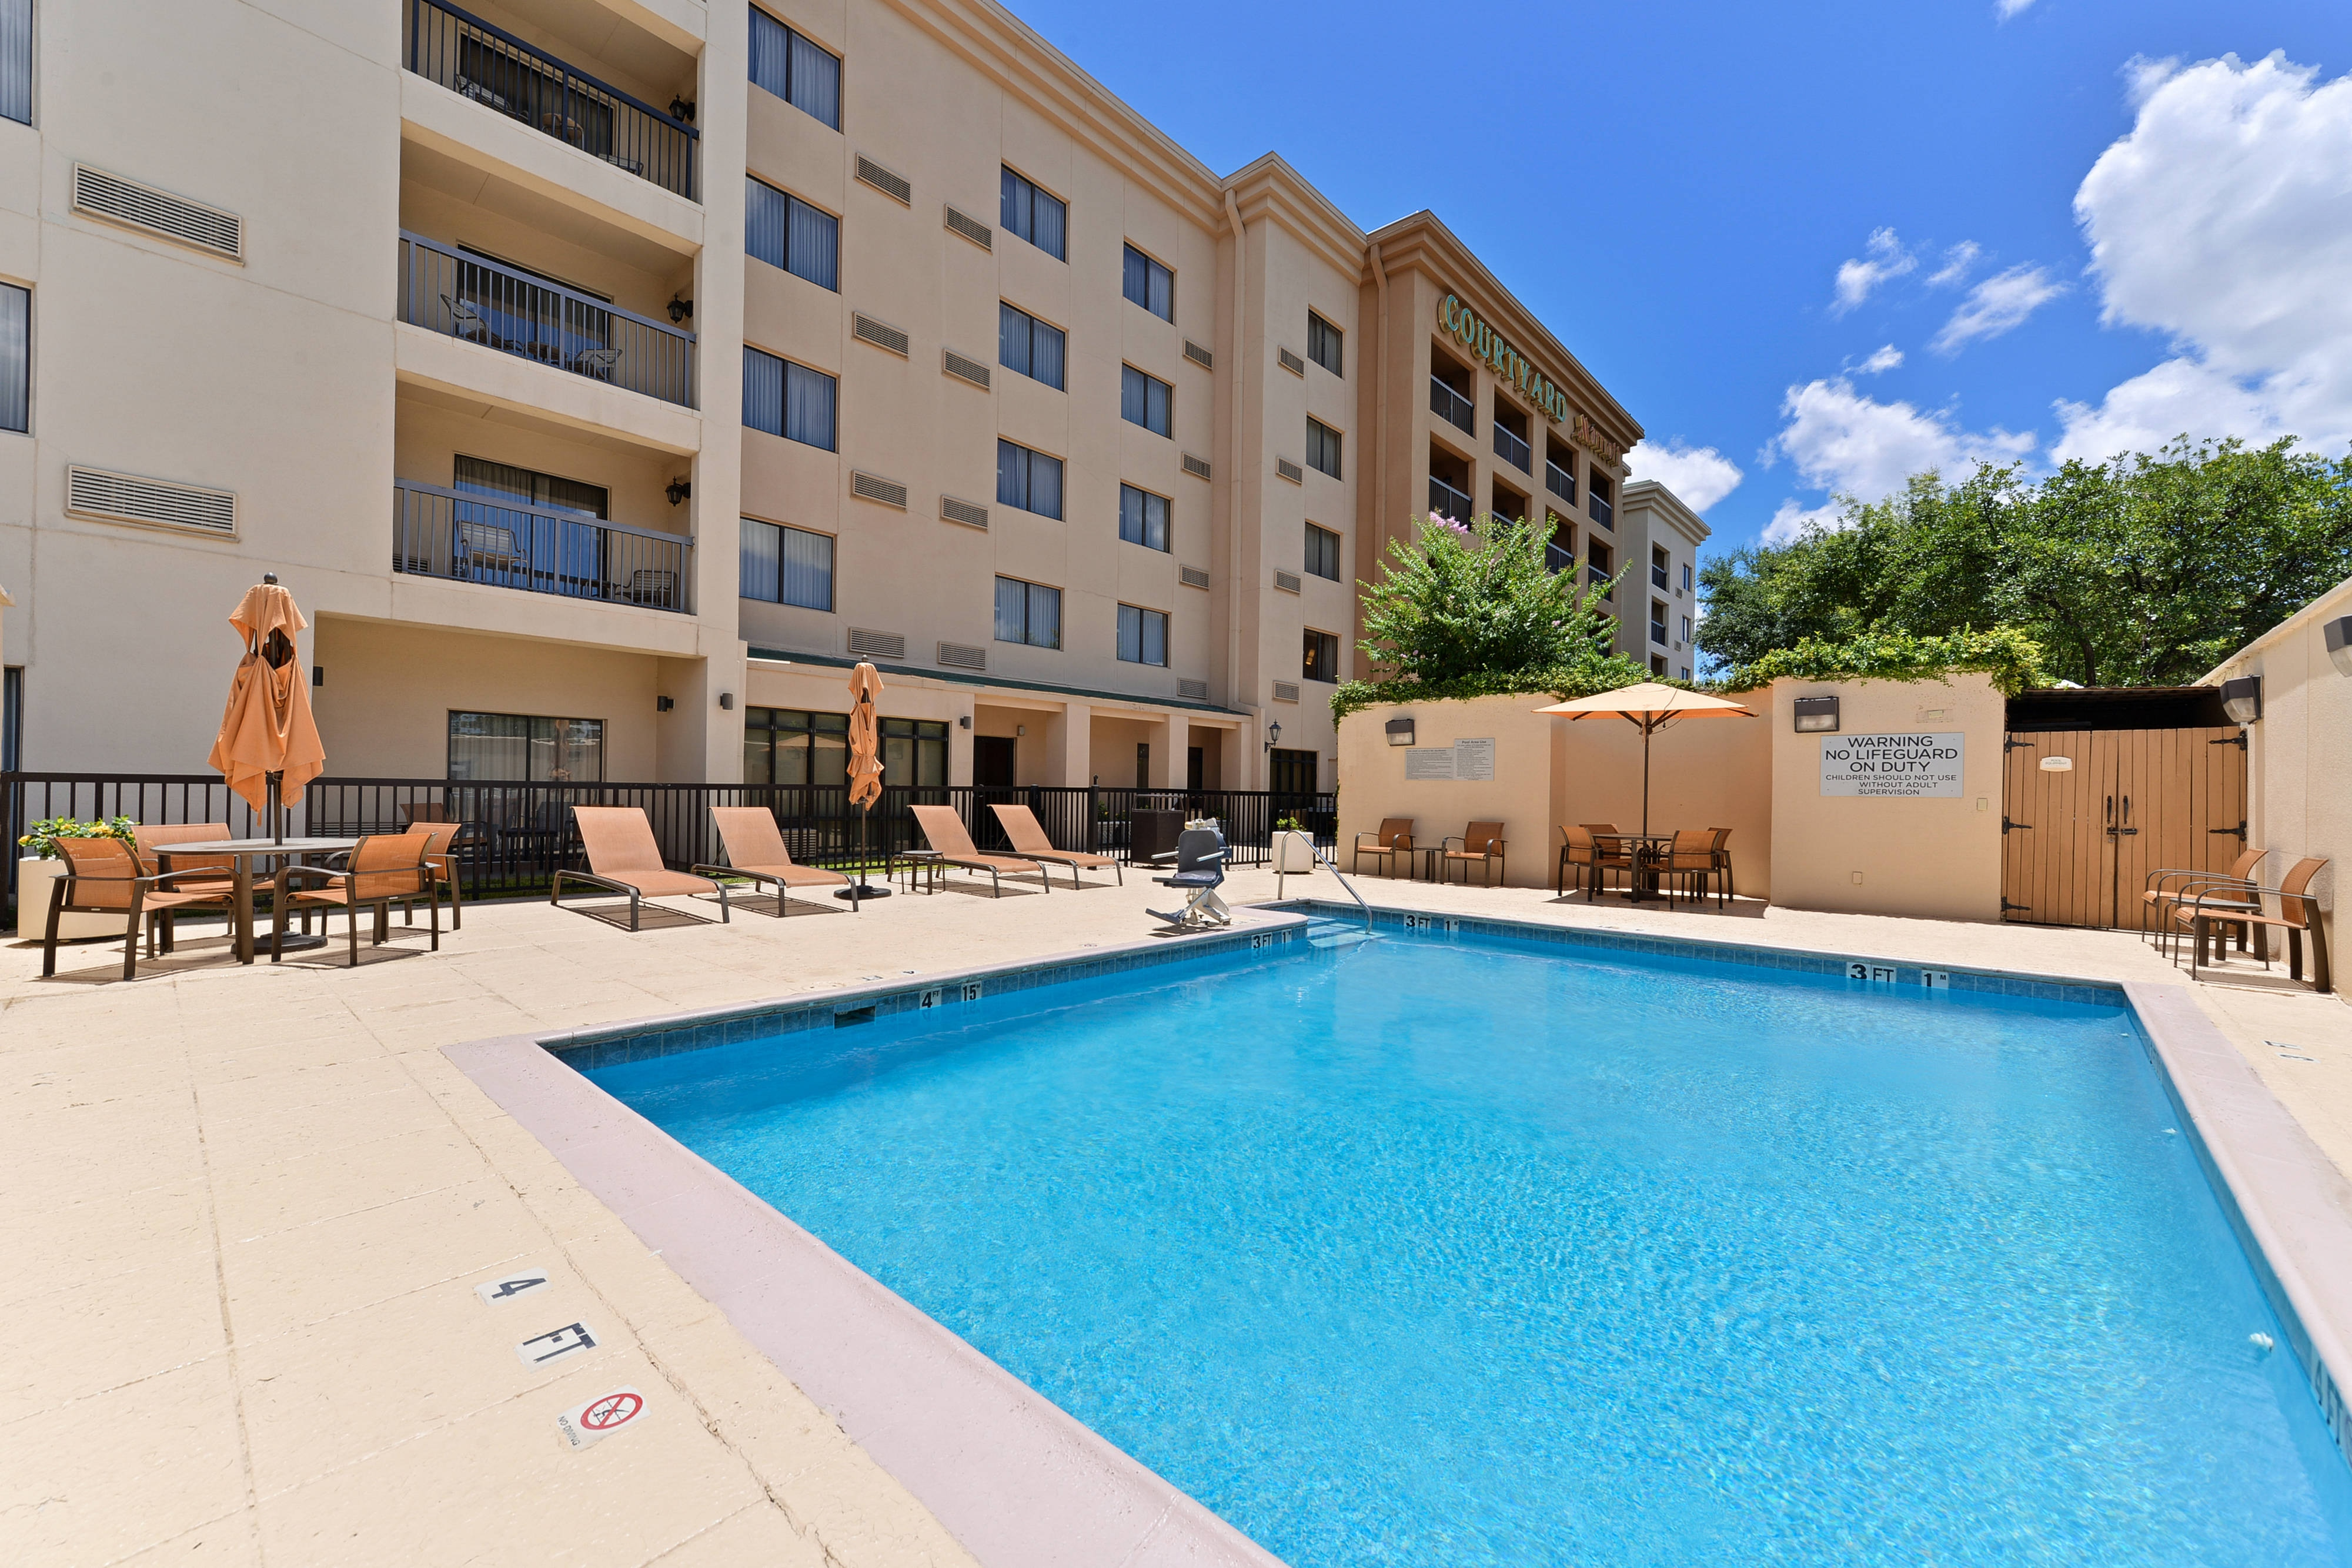 Courtyard by Marriott Laredo Outdoor Pool